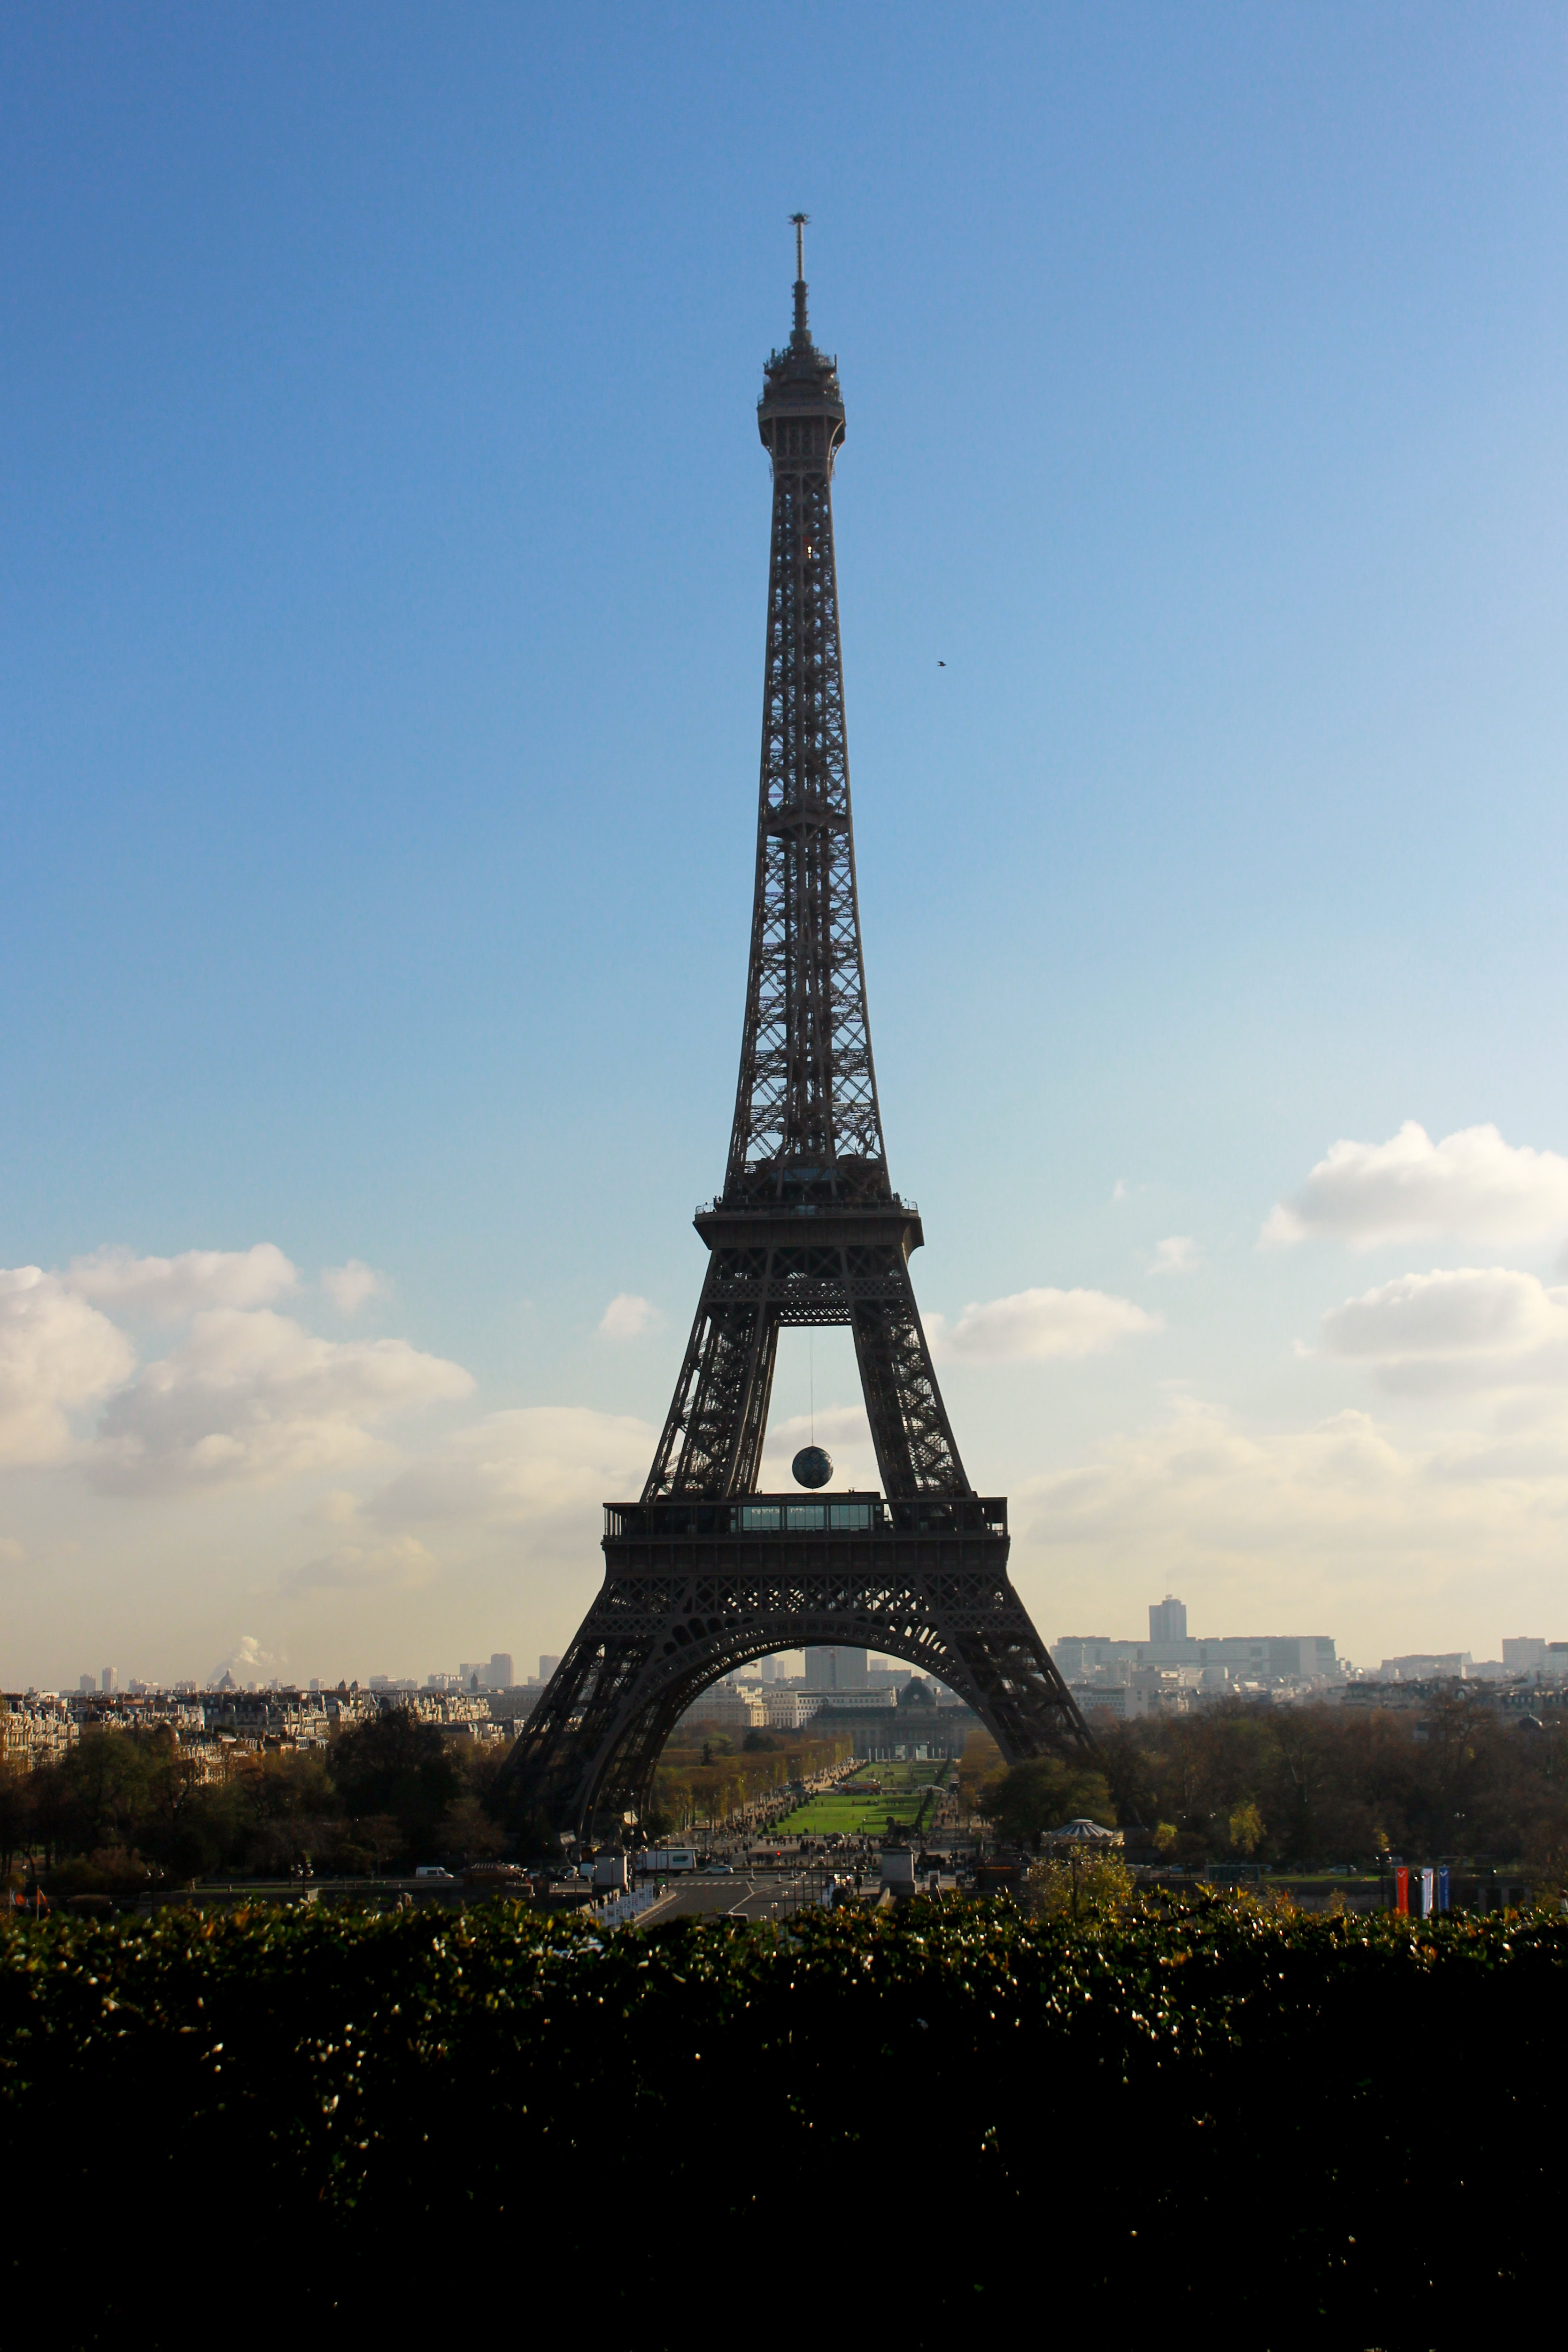 Eiffel Tower Paris during Daytime, City, Eiffel tower, Landmark, Outdoors, HQ Photo